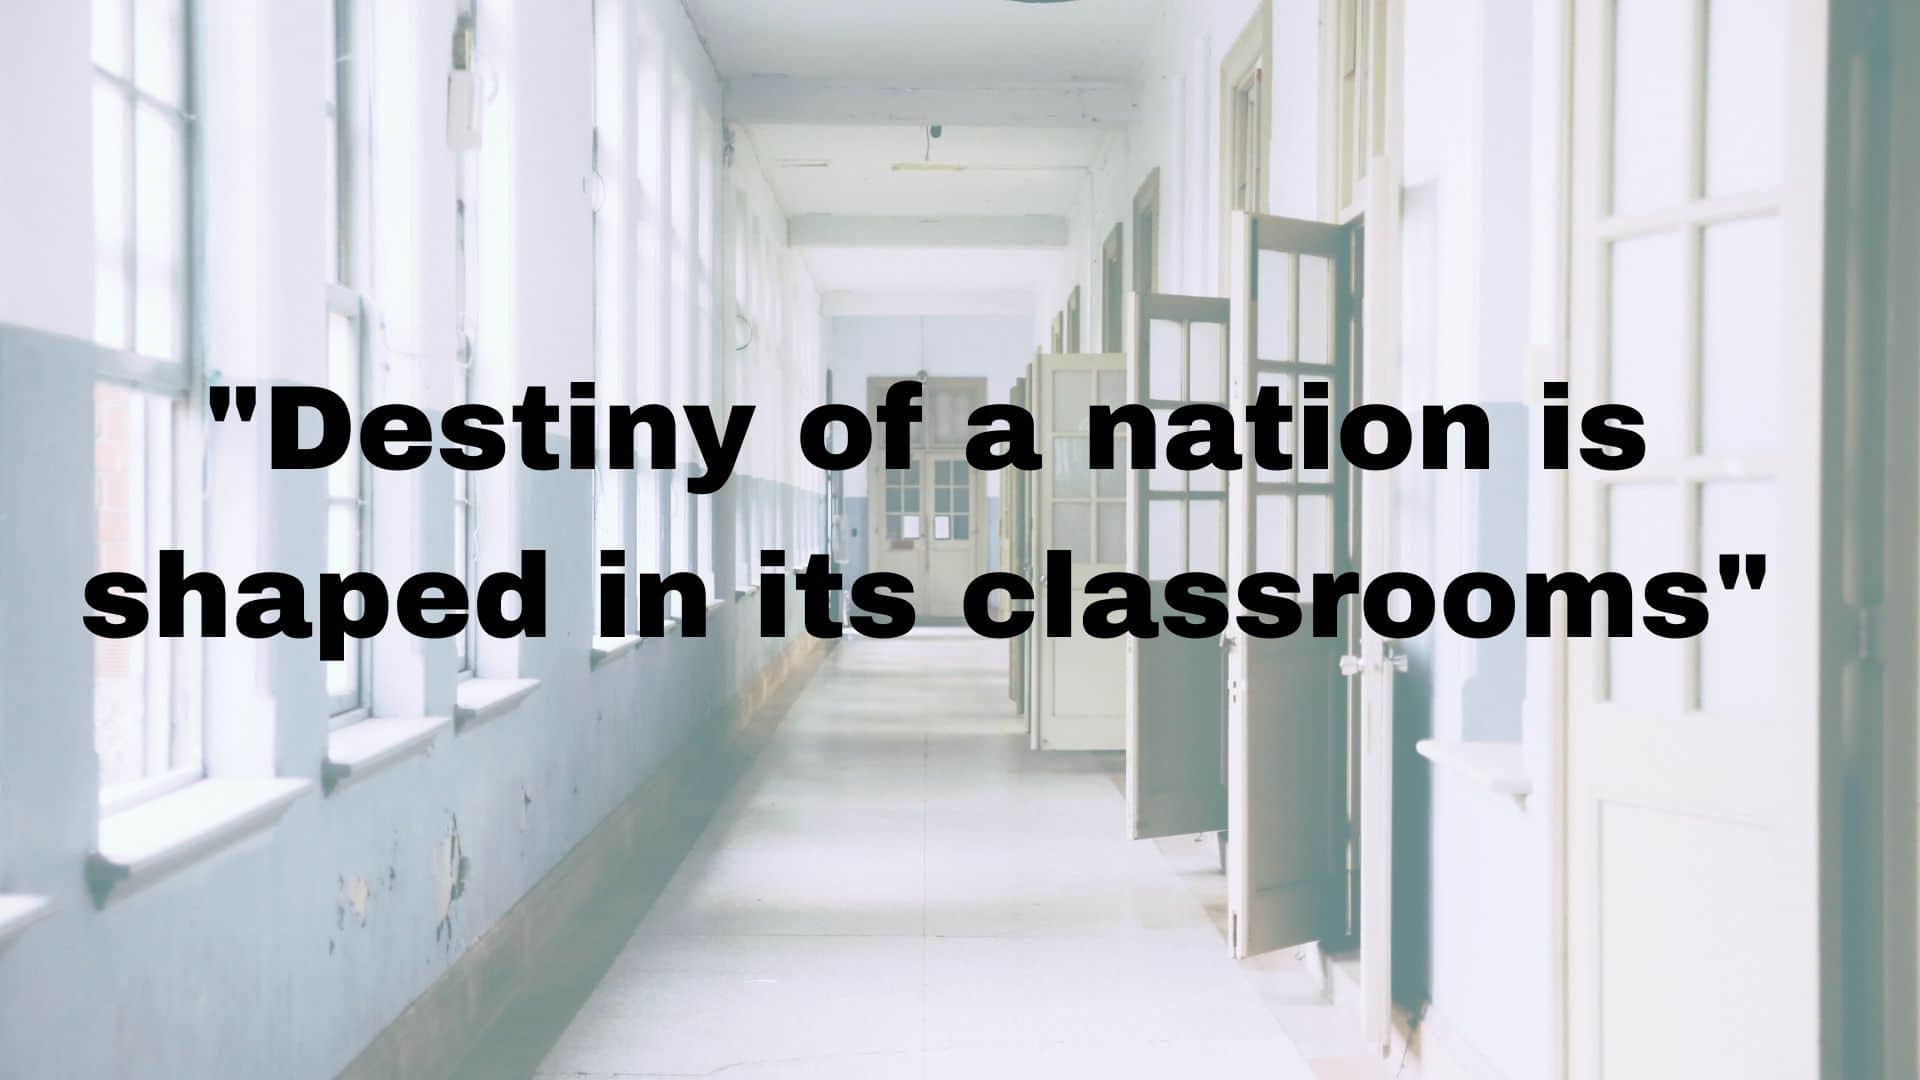 Destiny of a nation is shaped in its classrooms